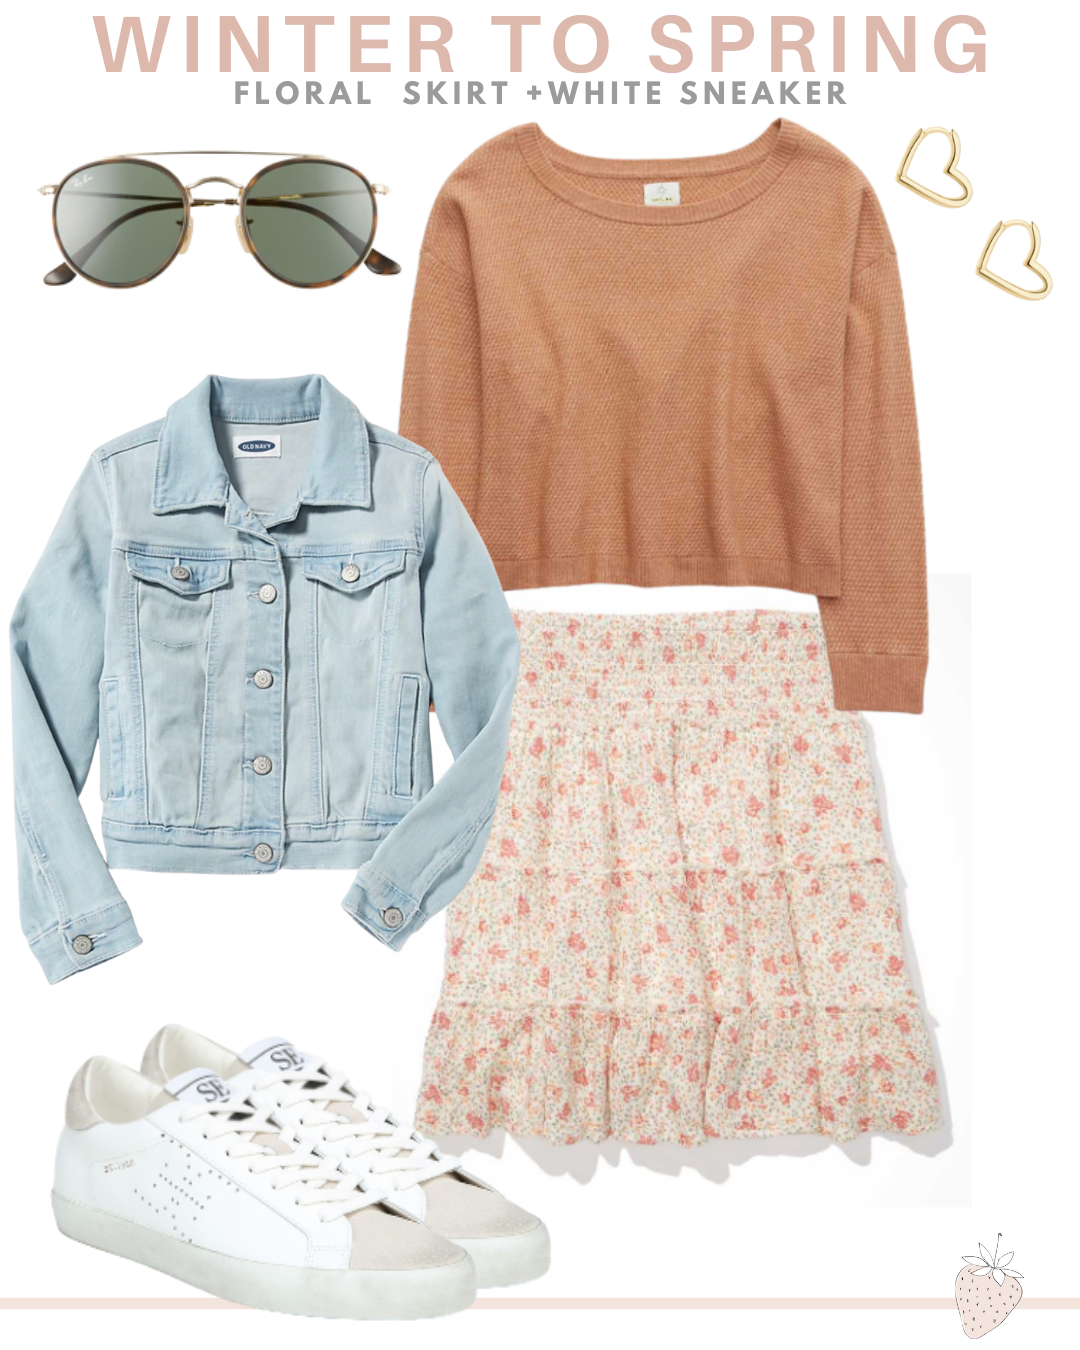 floral skirt and sneakers spring outfit